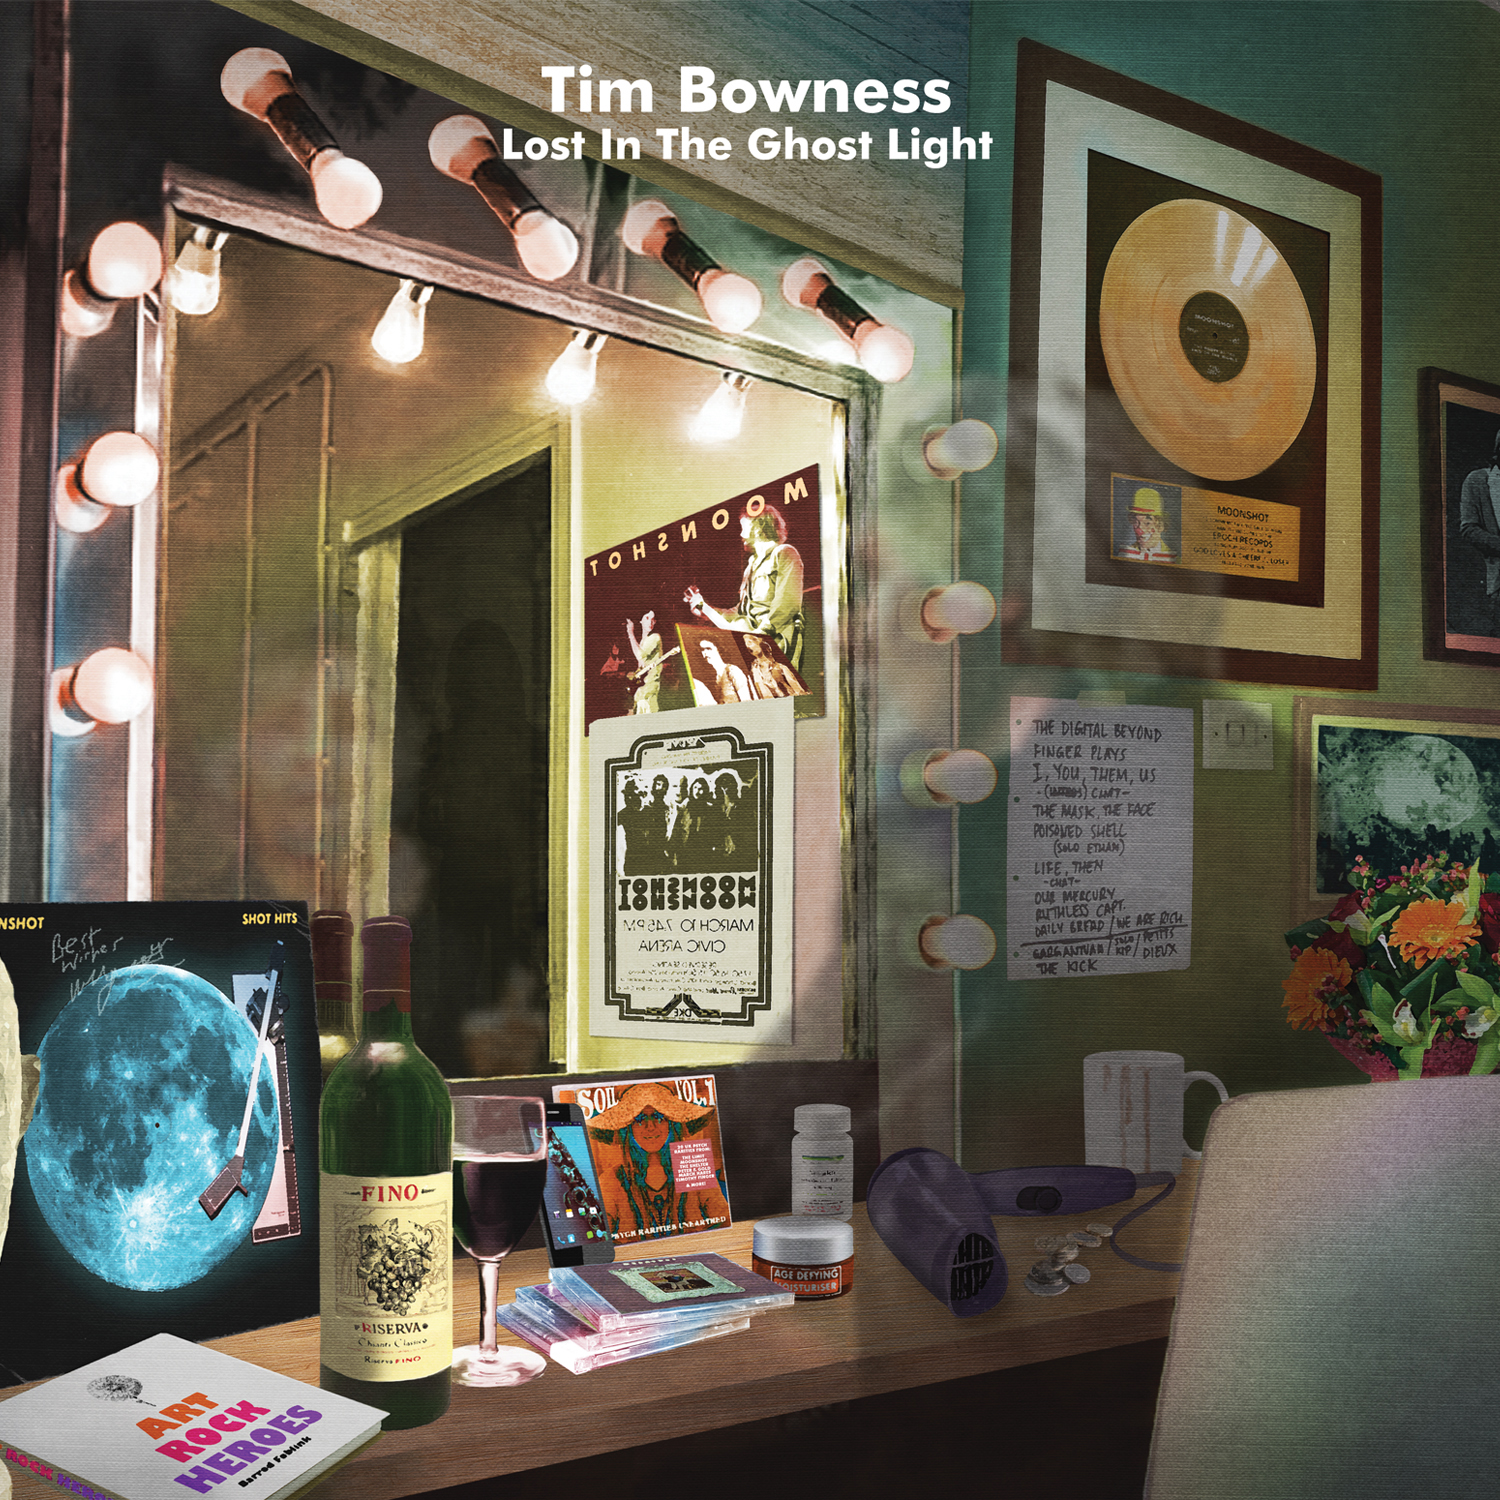 Image result for tim bowness lost in the ghost light